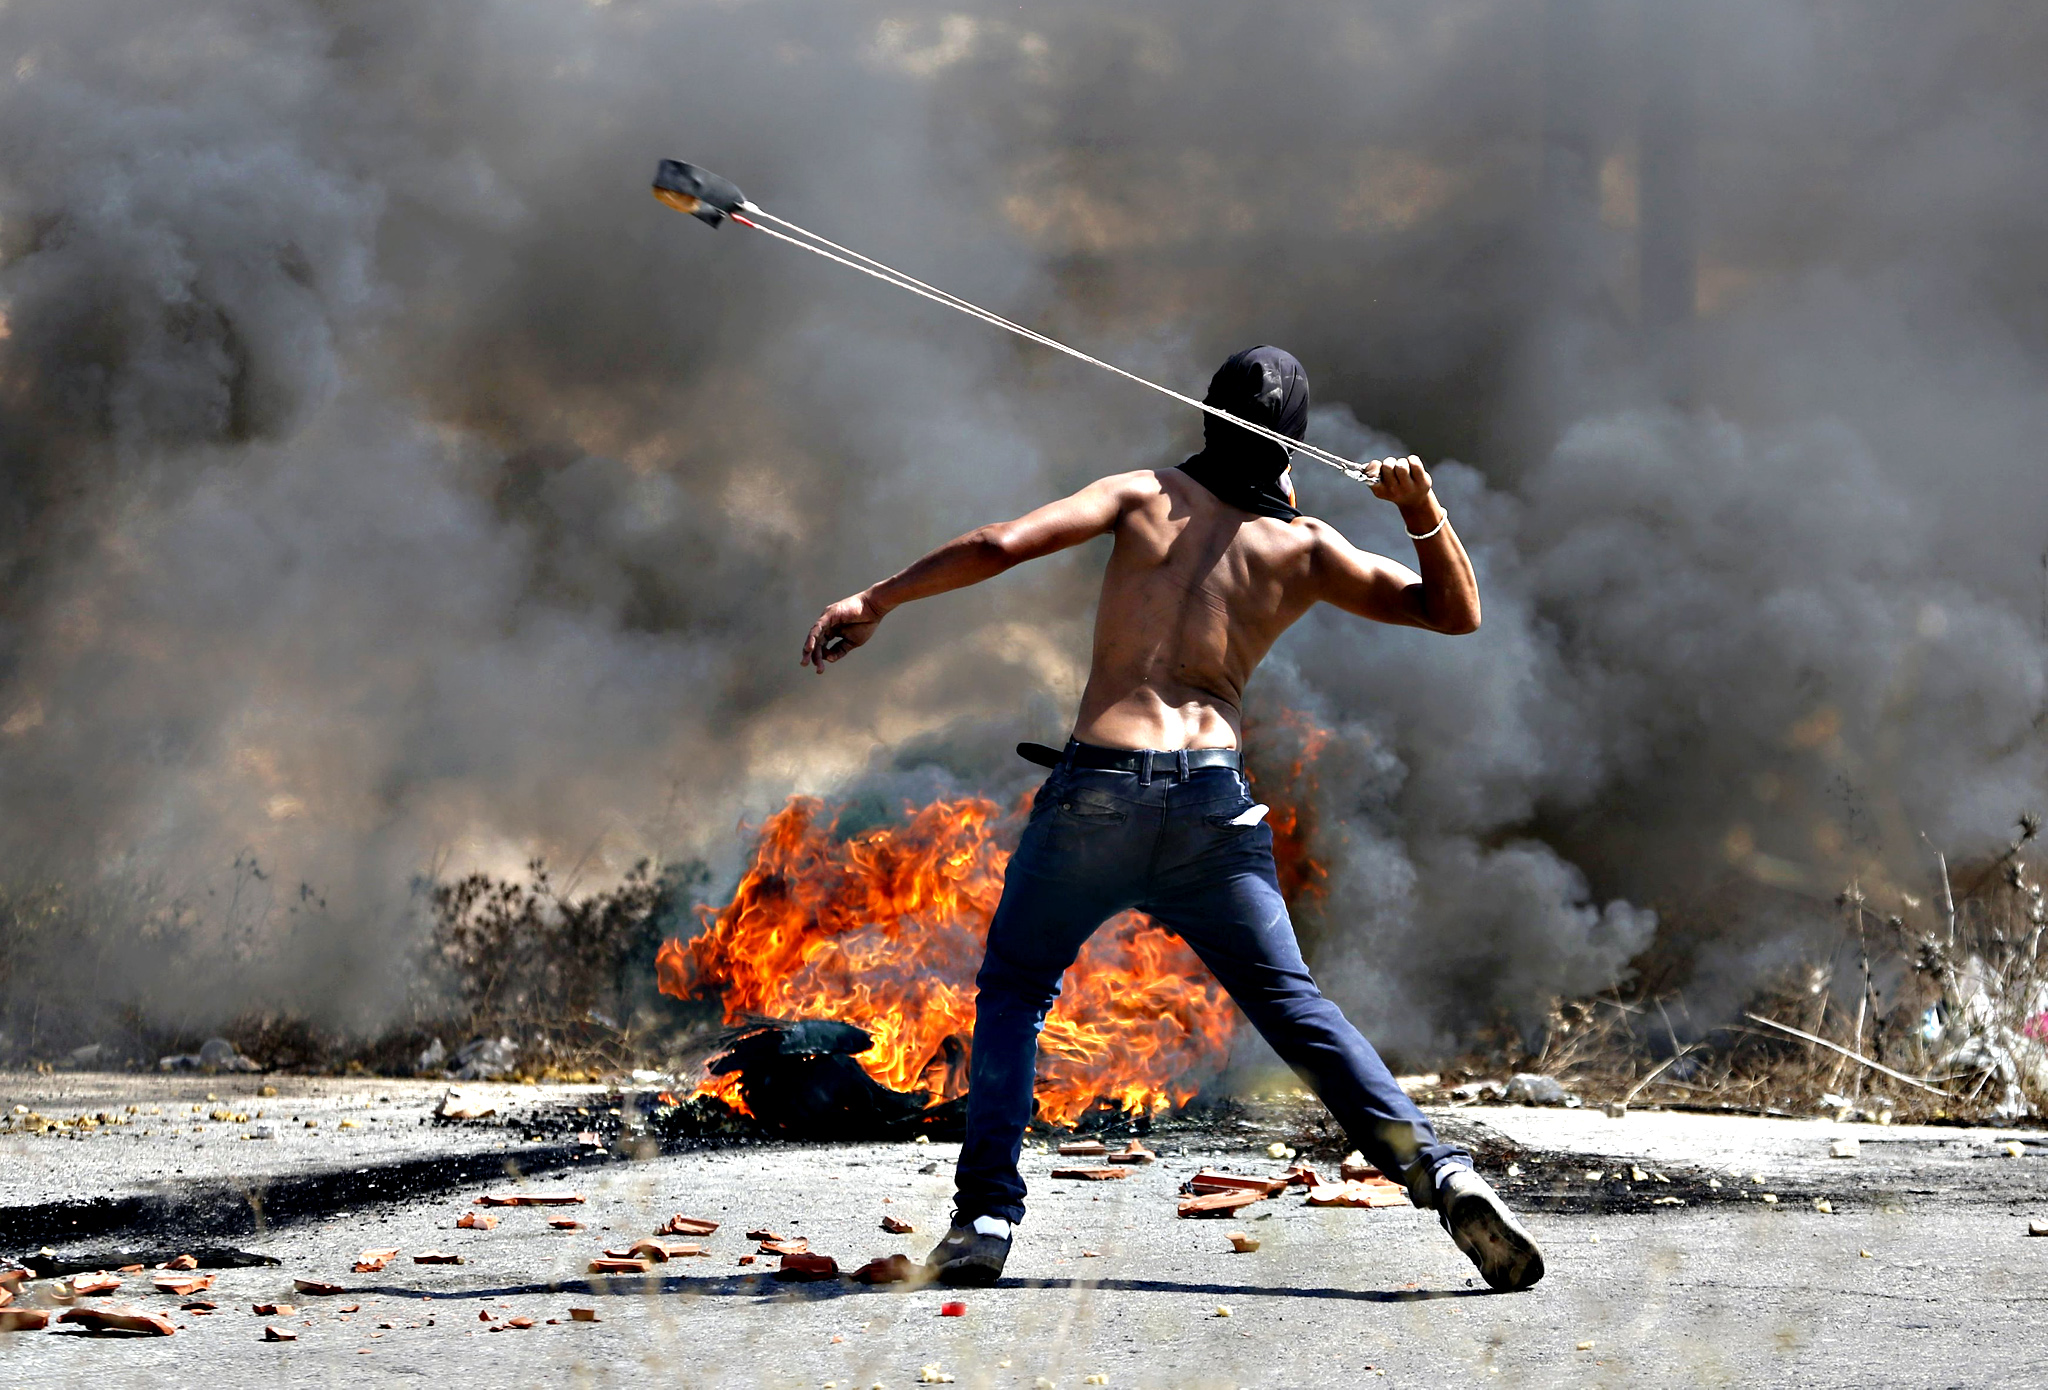 Palestinian protester uses a sling to hurl stones towards Israeli troops during clashes near the Jewish settlement of Bet El, near the occupied West Bank city of Ramallah...A Palestinian protester uses a sling to hurl stones towards Israeli troops during clashes near the Jewish settlement of Bet El, near the occupied West Bank city of Ramallah October 5, 2015. Violence intensified in Jerusalem and the West Bank on Sunday after Israelis were targeted in two stabbing attacks and a Palestinian was killed in a clash with Israeli troops, officials said